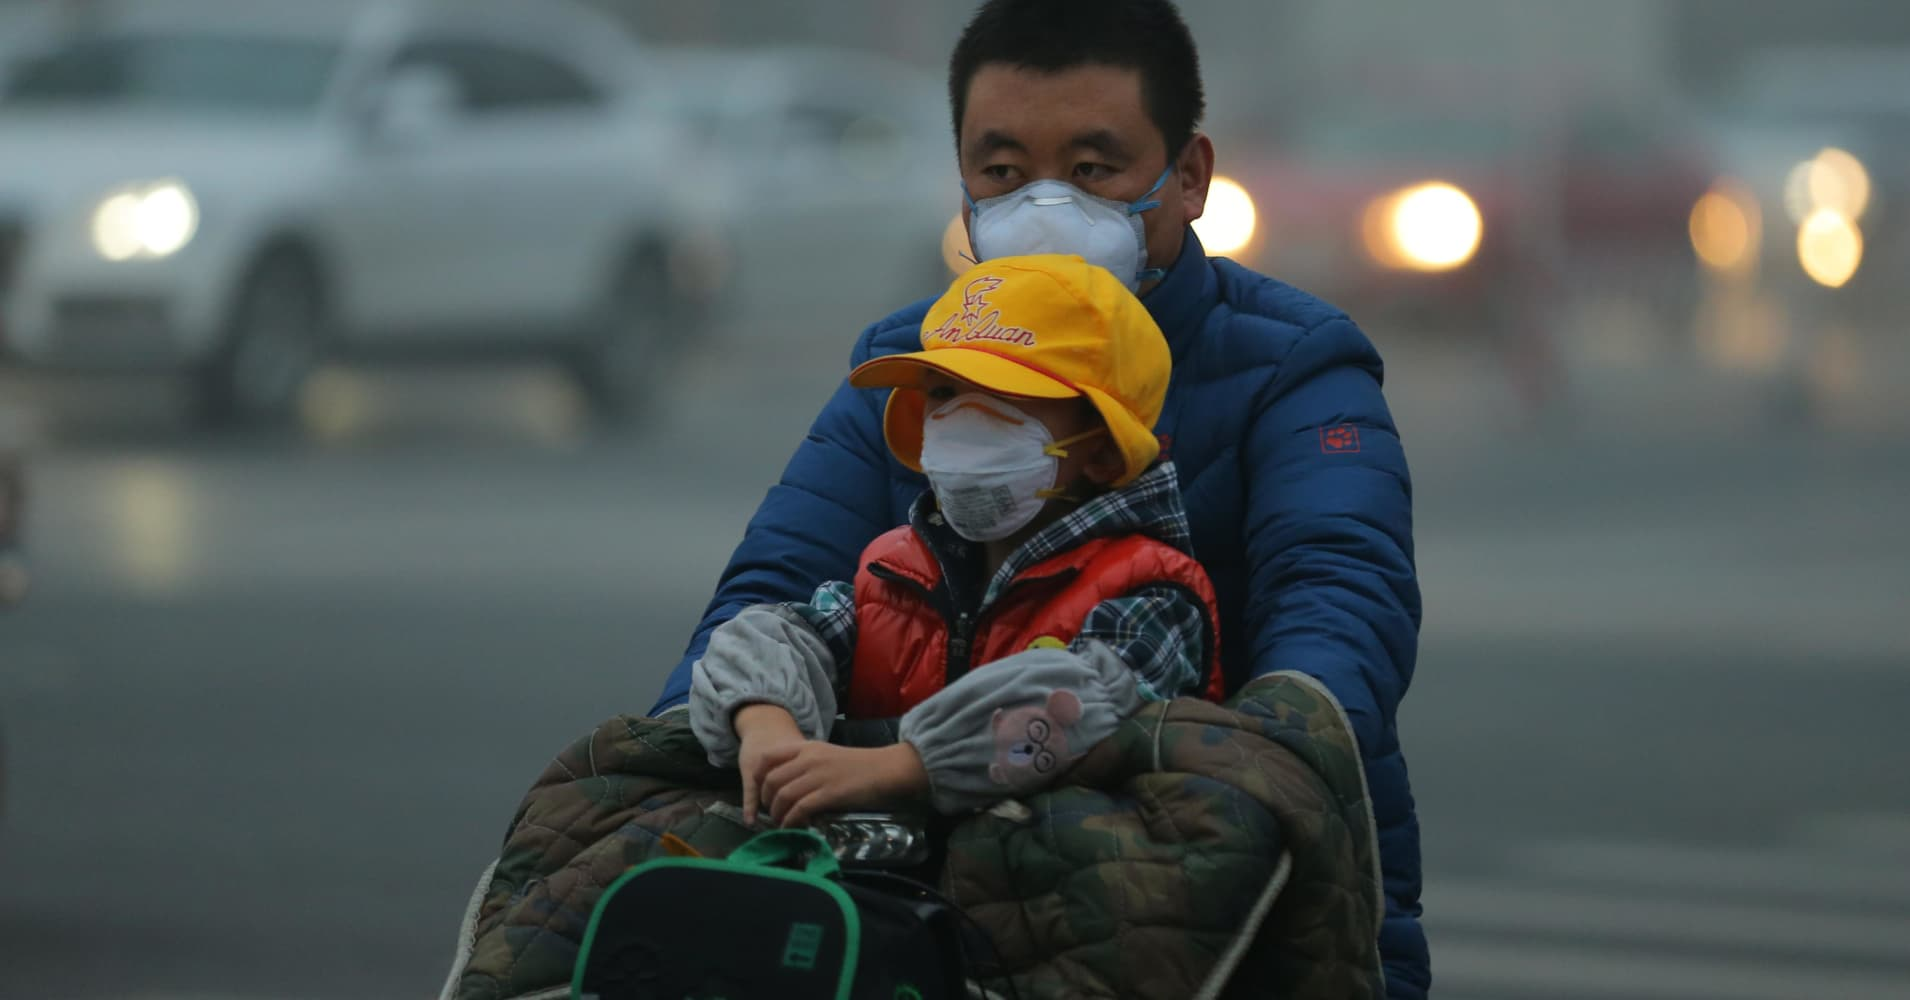 Total of 79 Chinese cities trigger air pollution alerts - Xinhua